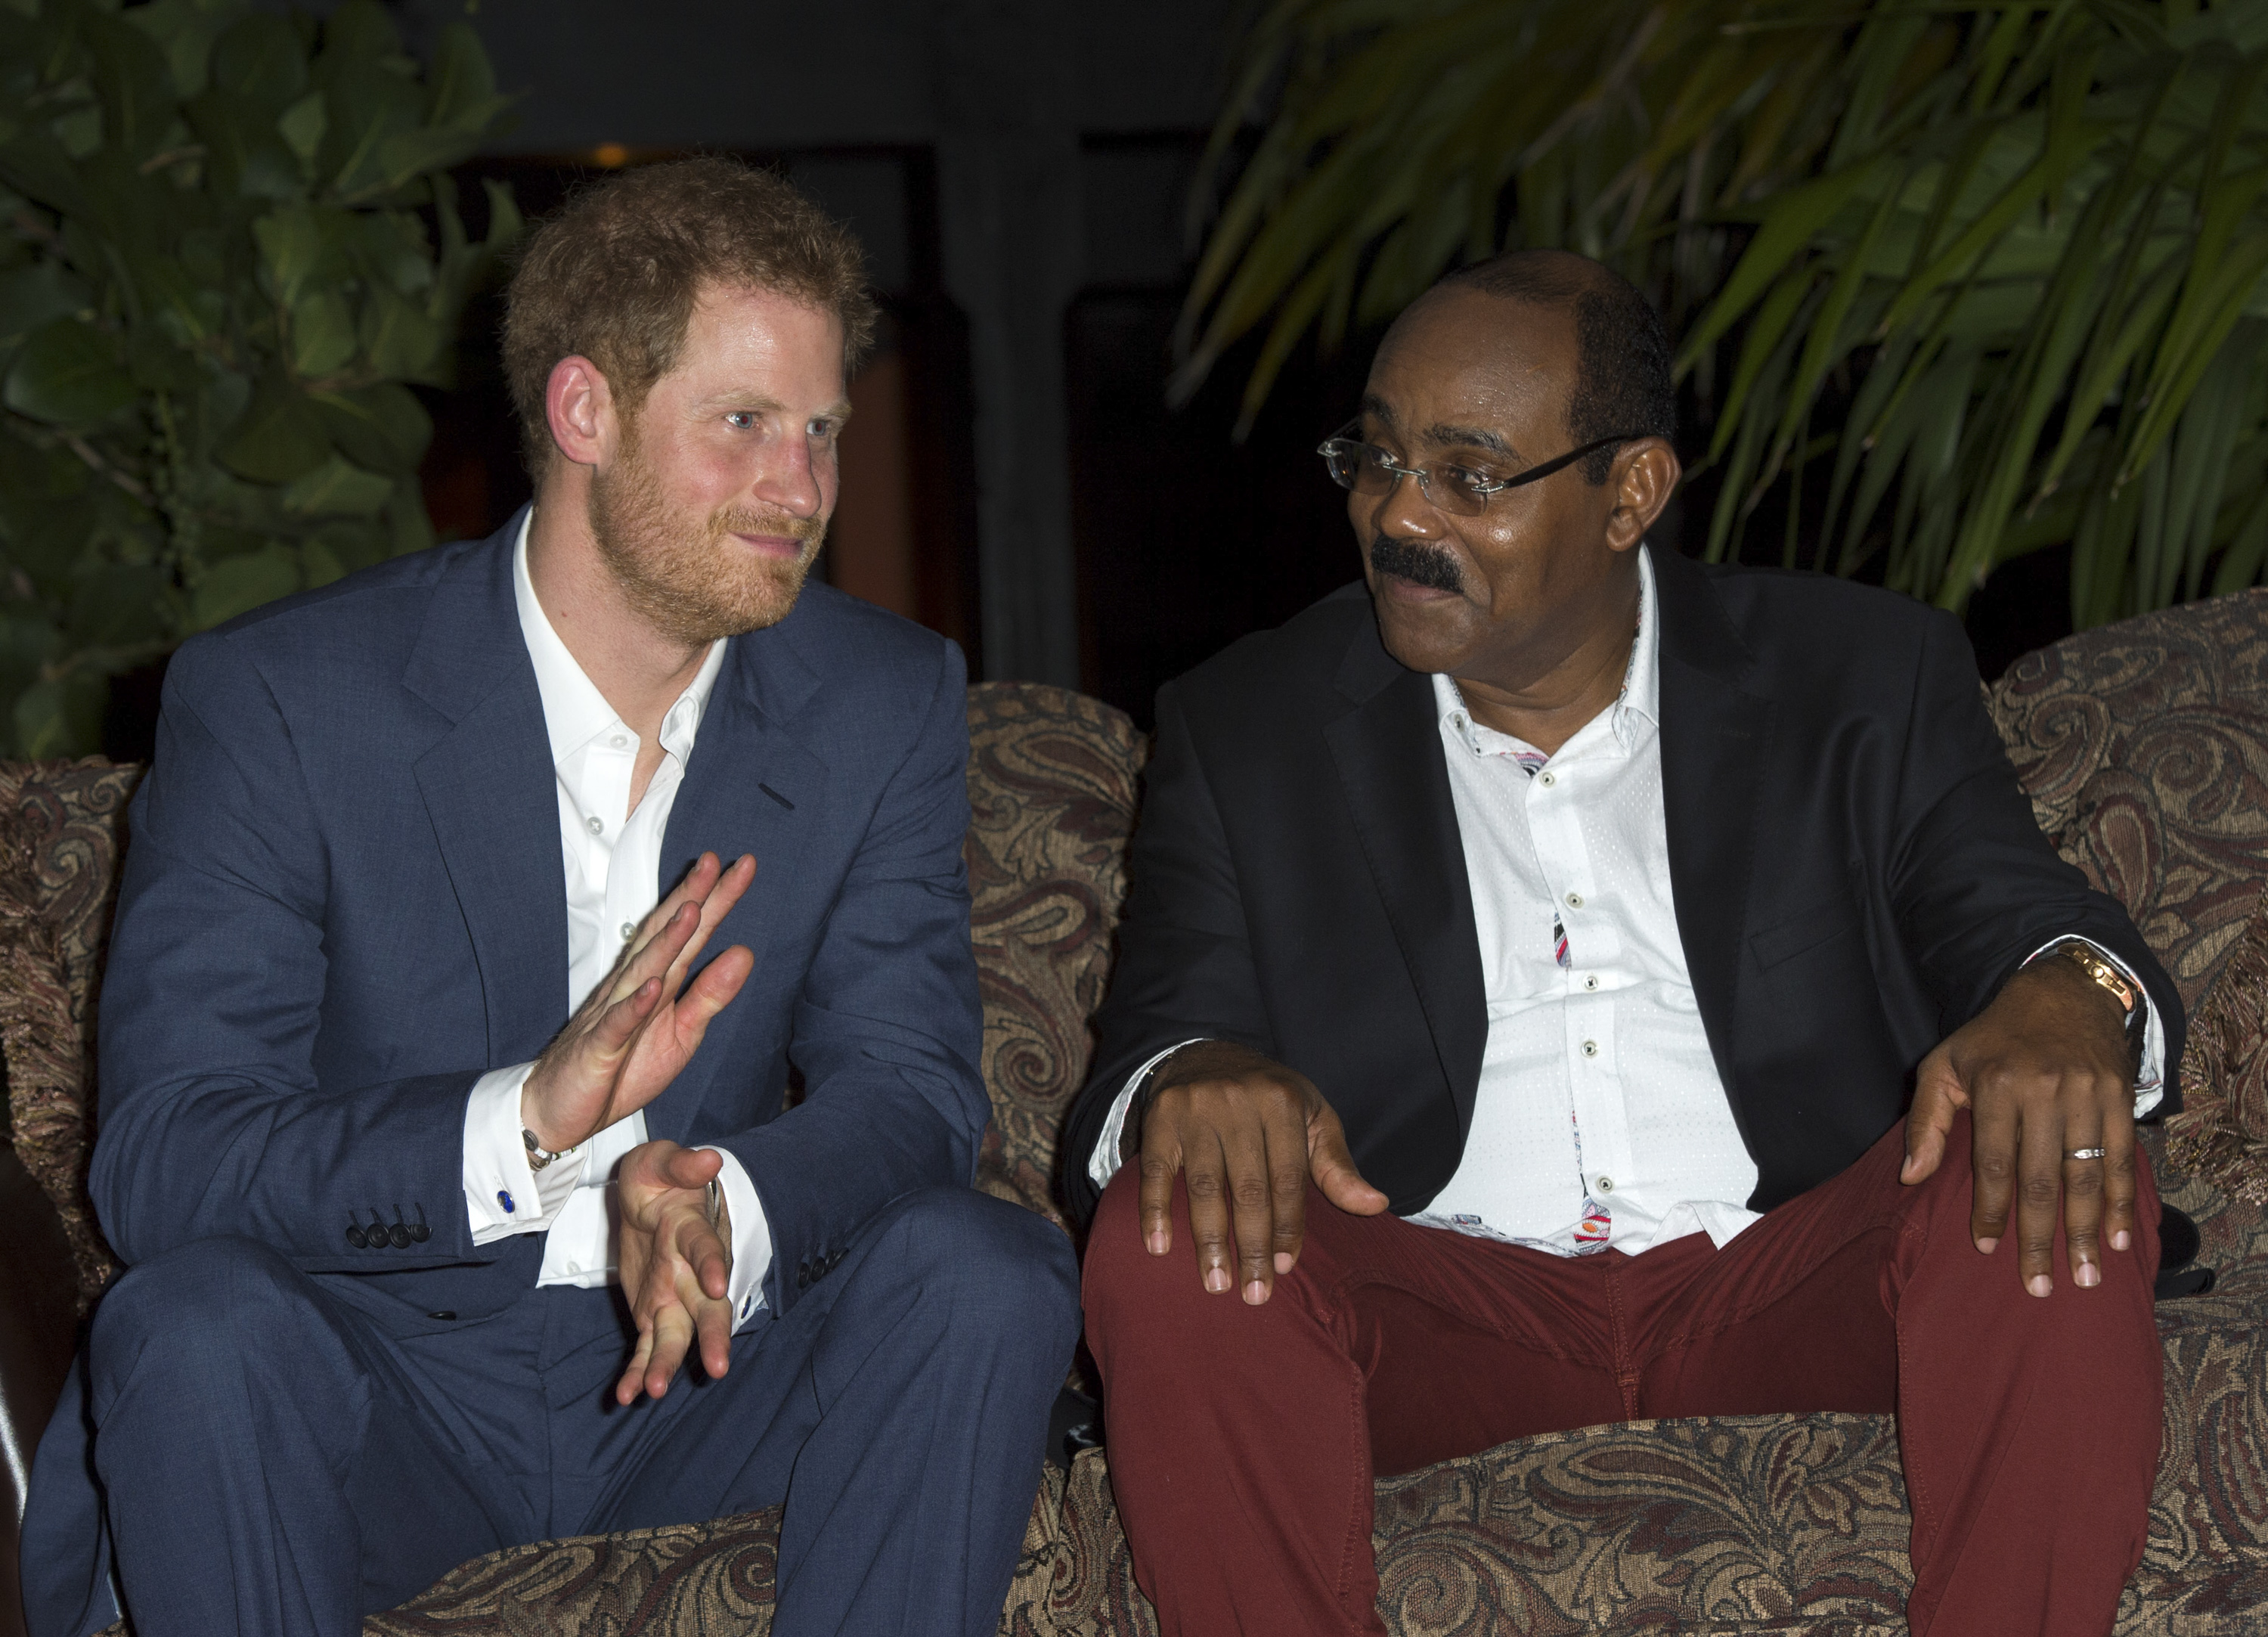 Prime Minister of Antigua and Barbuda Gaston Browne alongside Prince Harry during the British royal's official visit to Antigua on Nov. 21, 2016